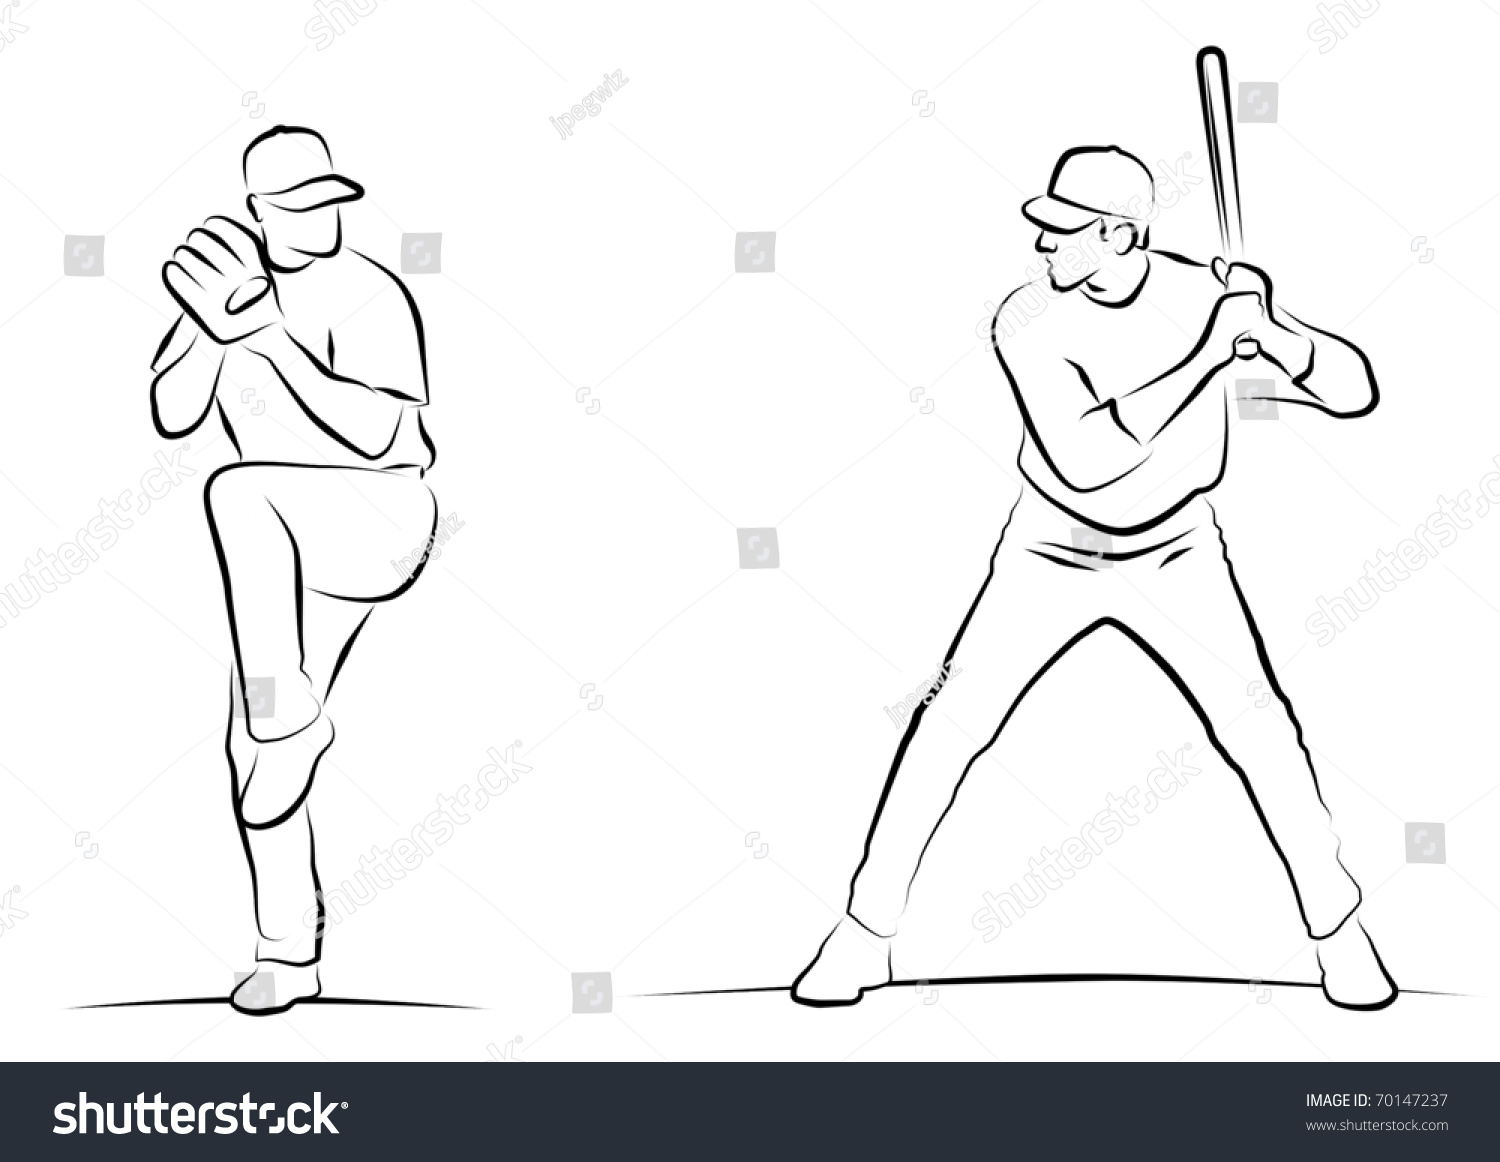 Uncategorized How To Draw A Baseball Pitcher line drawings baseball pitcher batter stock illustration 70147237 of and batter